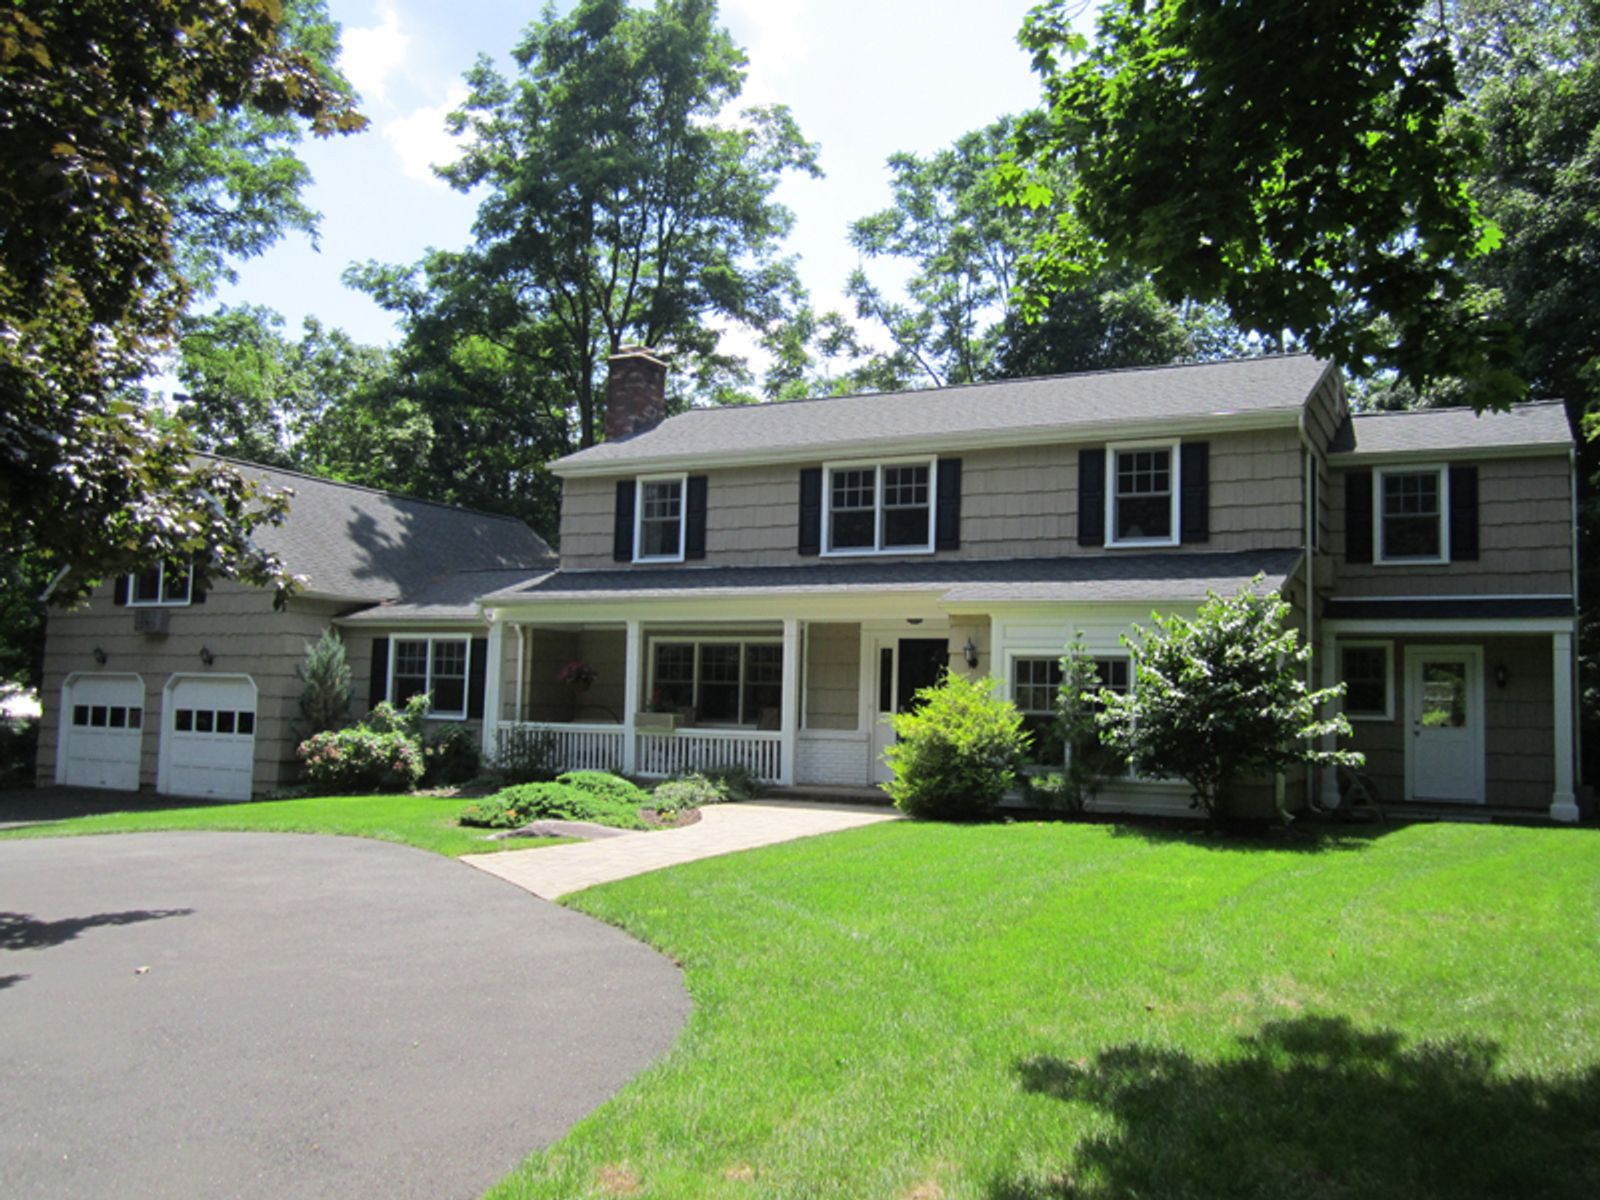 Renovated Colonial on Cul-de-Sac , Greenwich CT Single Family Home - Greenwich Real Estate